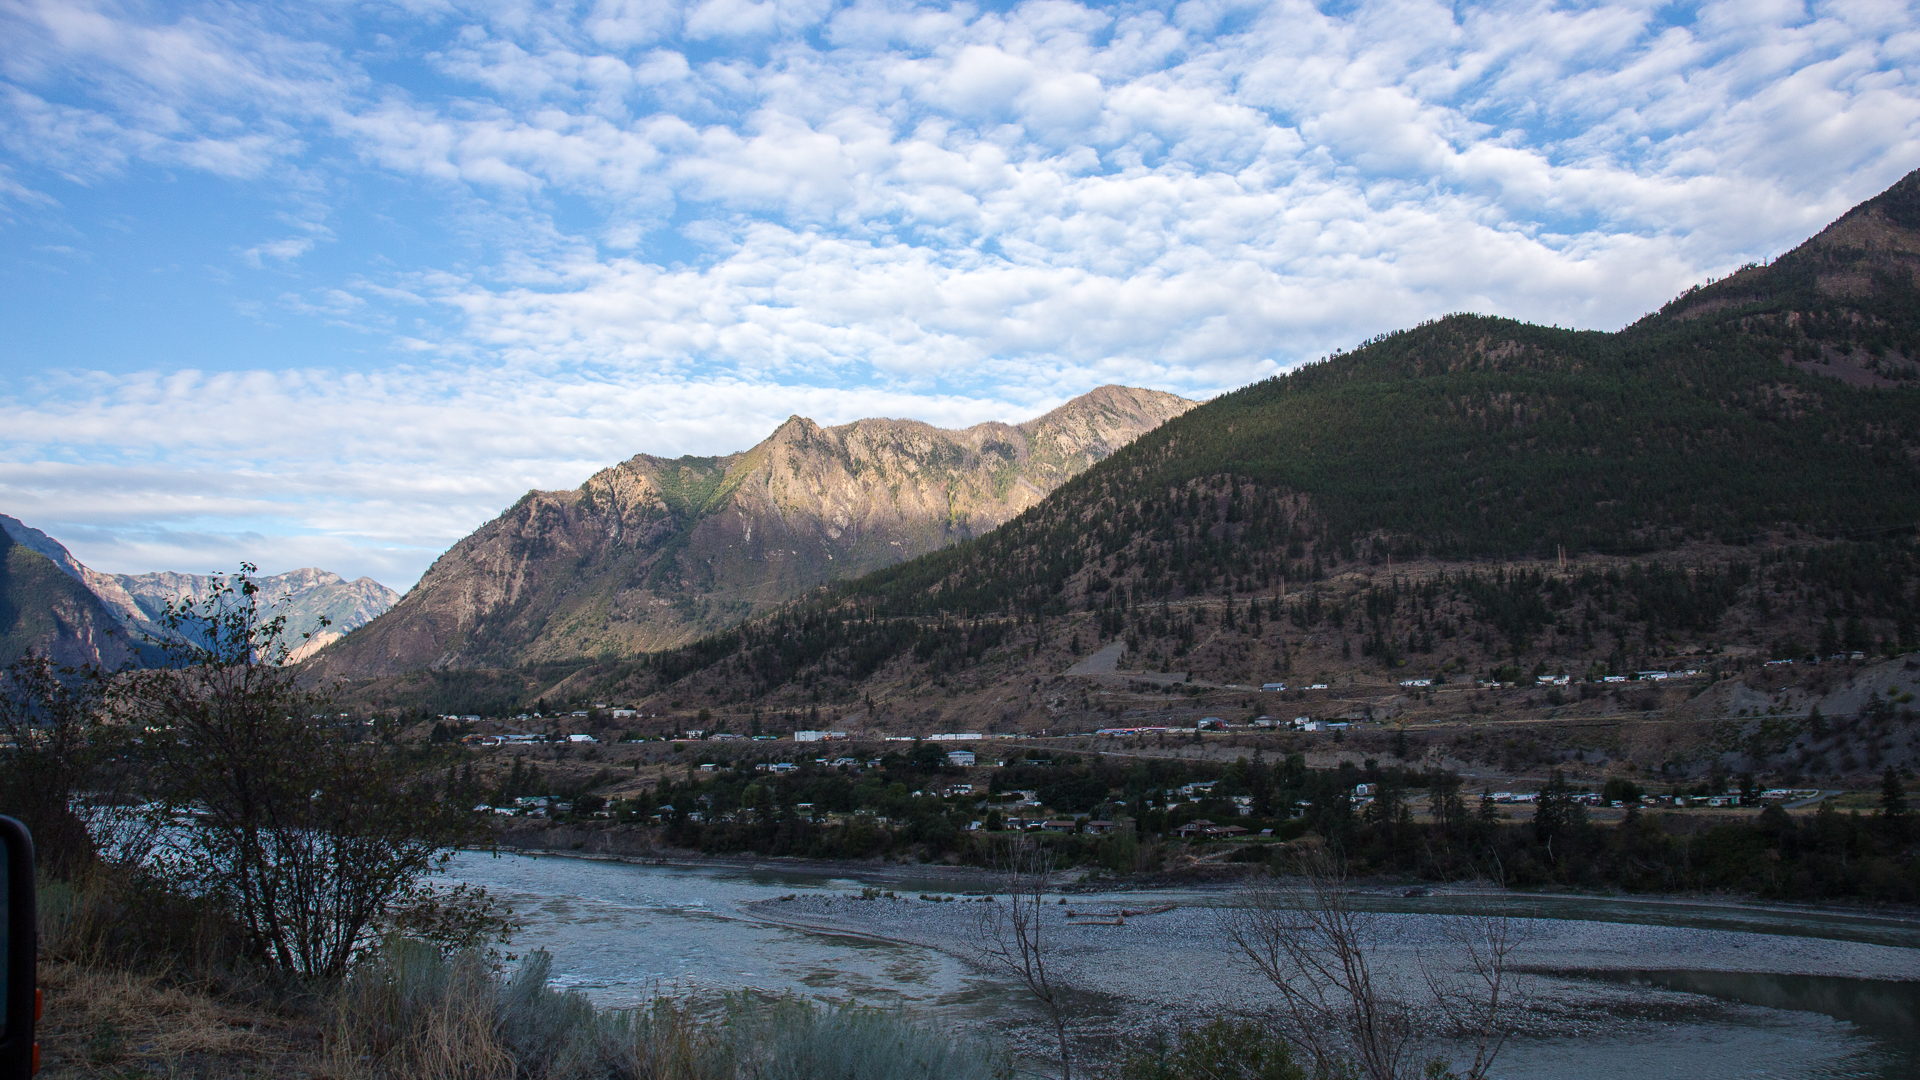 It was a nice start to the day in Lillooet